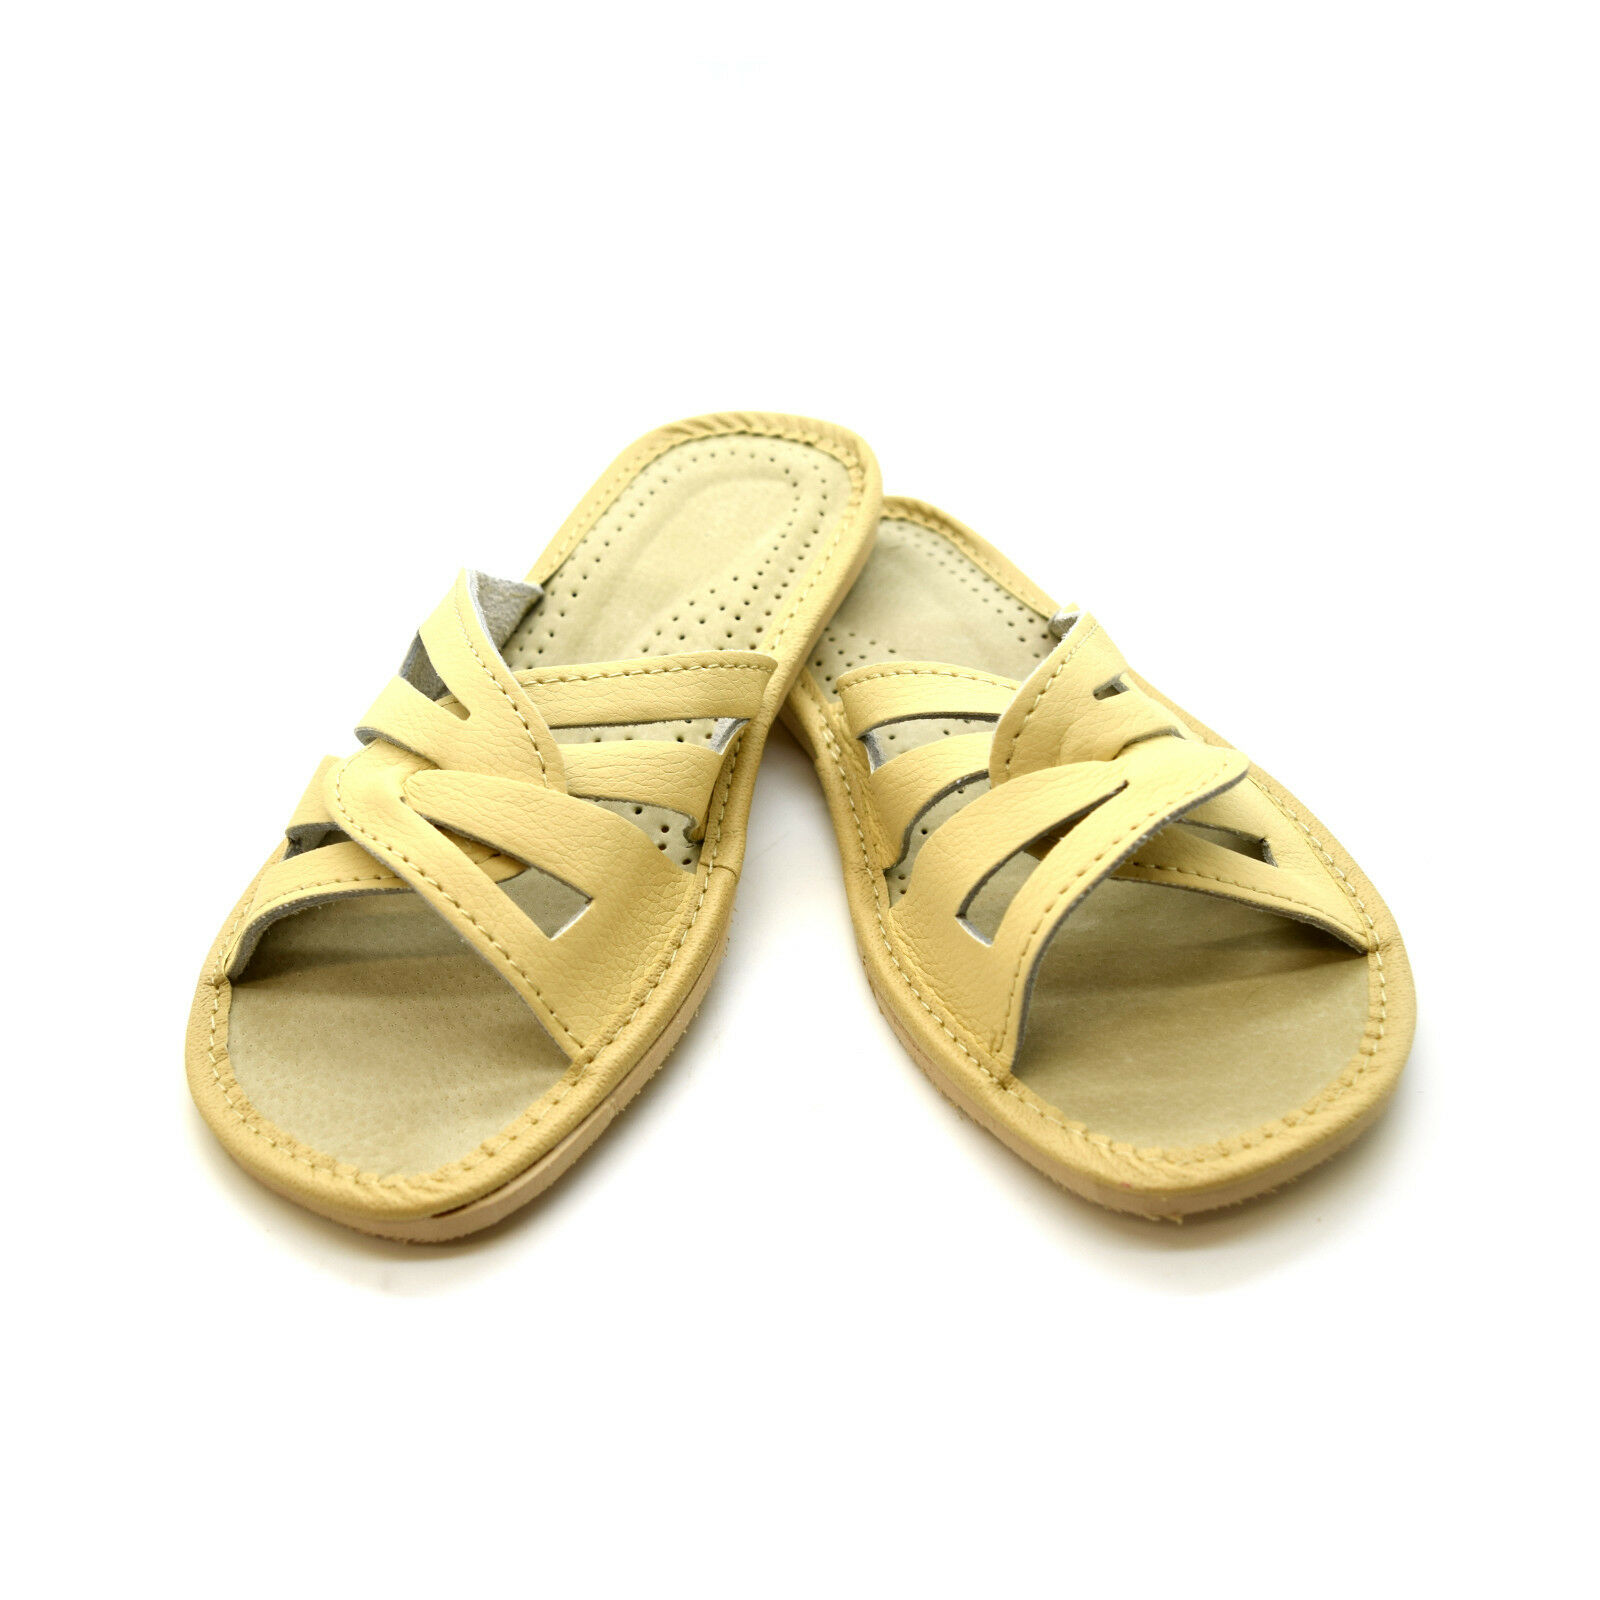 BEIGE Womens Ladies Slippers Shoes Sandals 6 Size 3 4 5 6 Sandals 7 8 Eco Leather KP1 95a6be